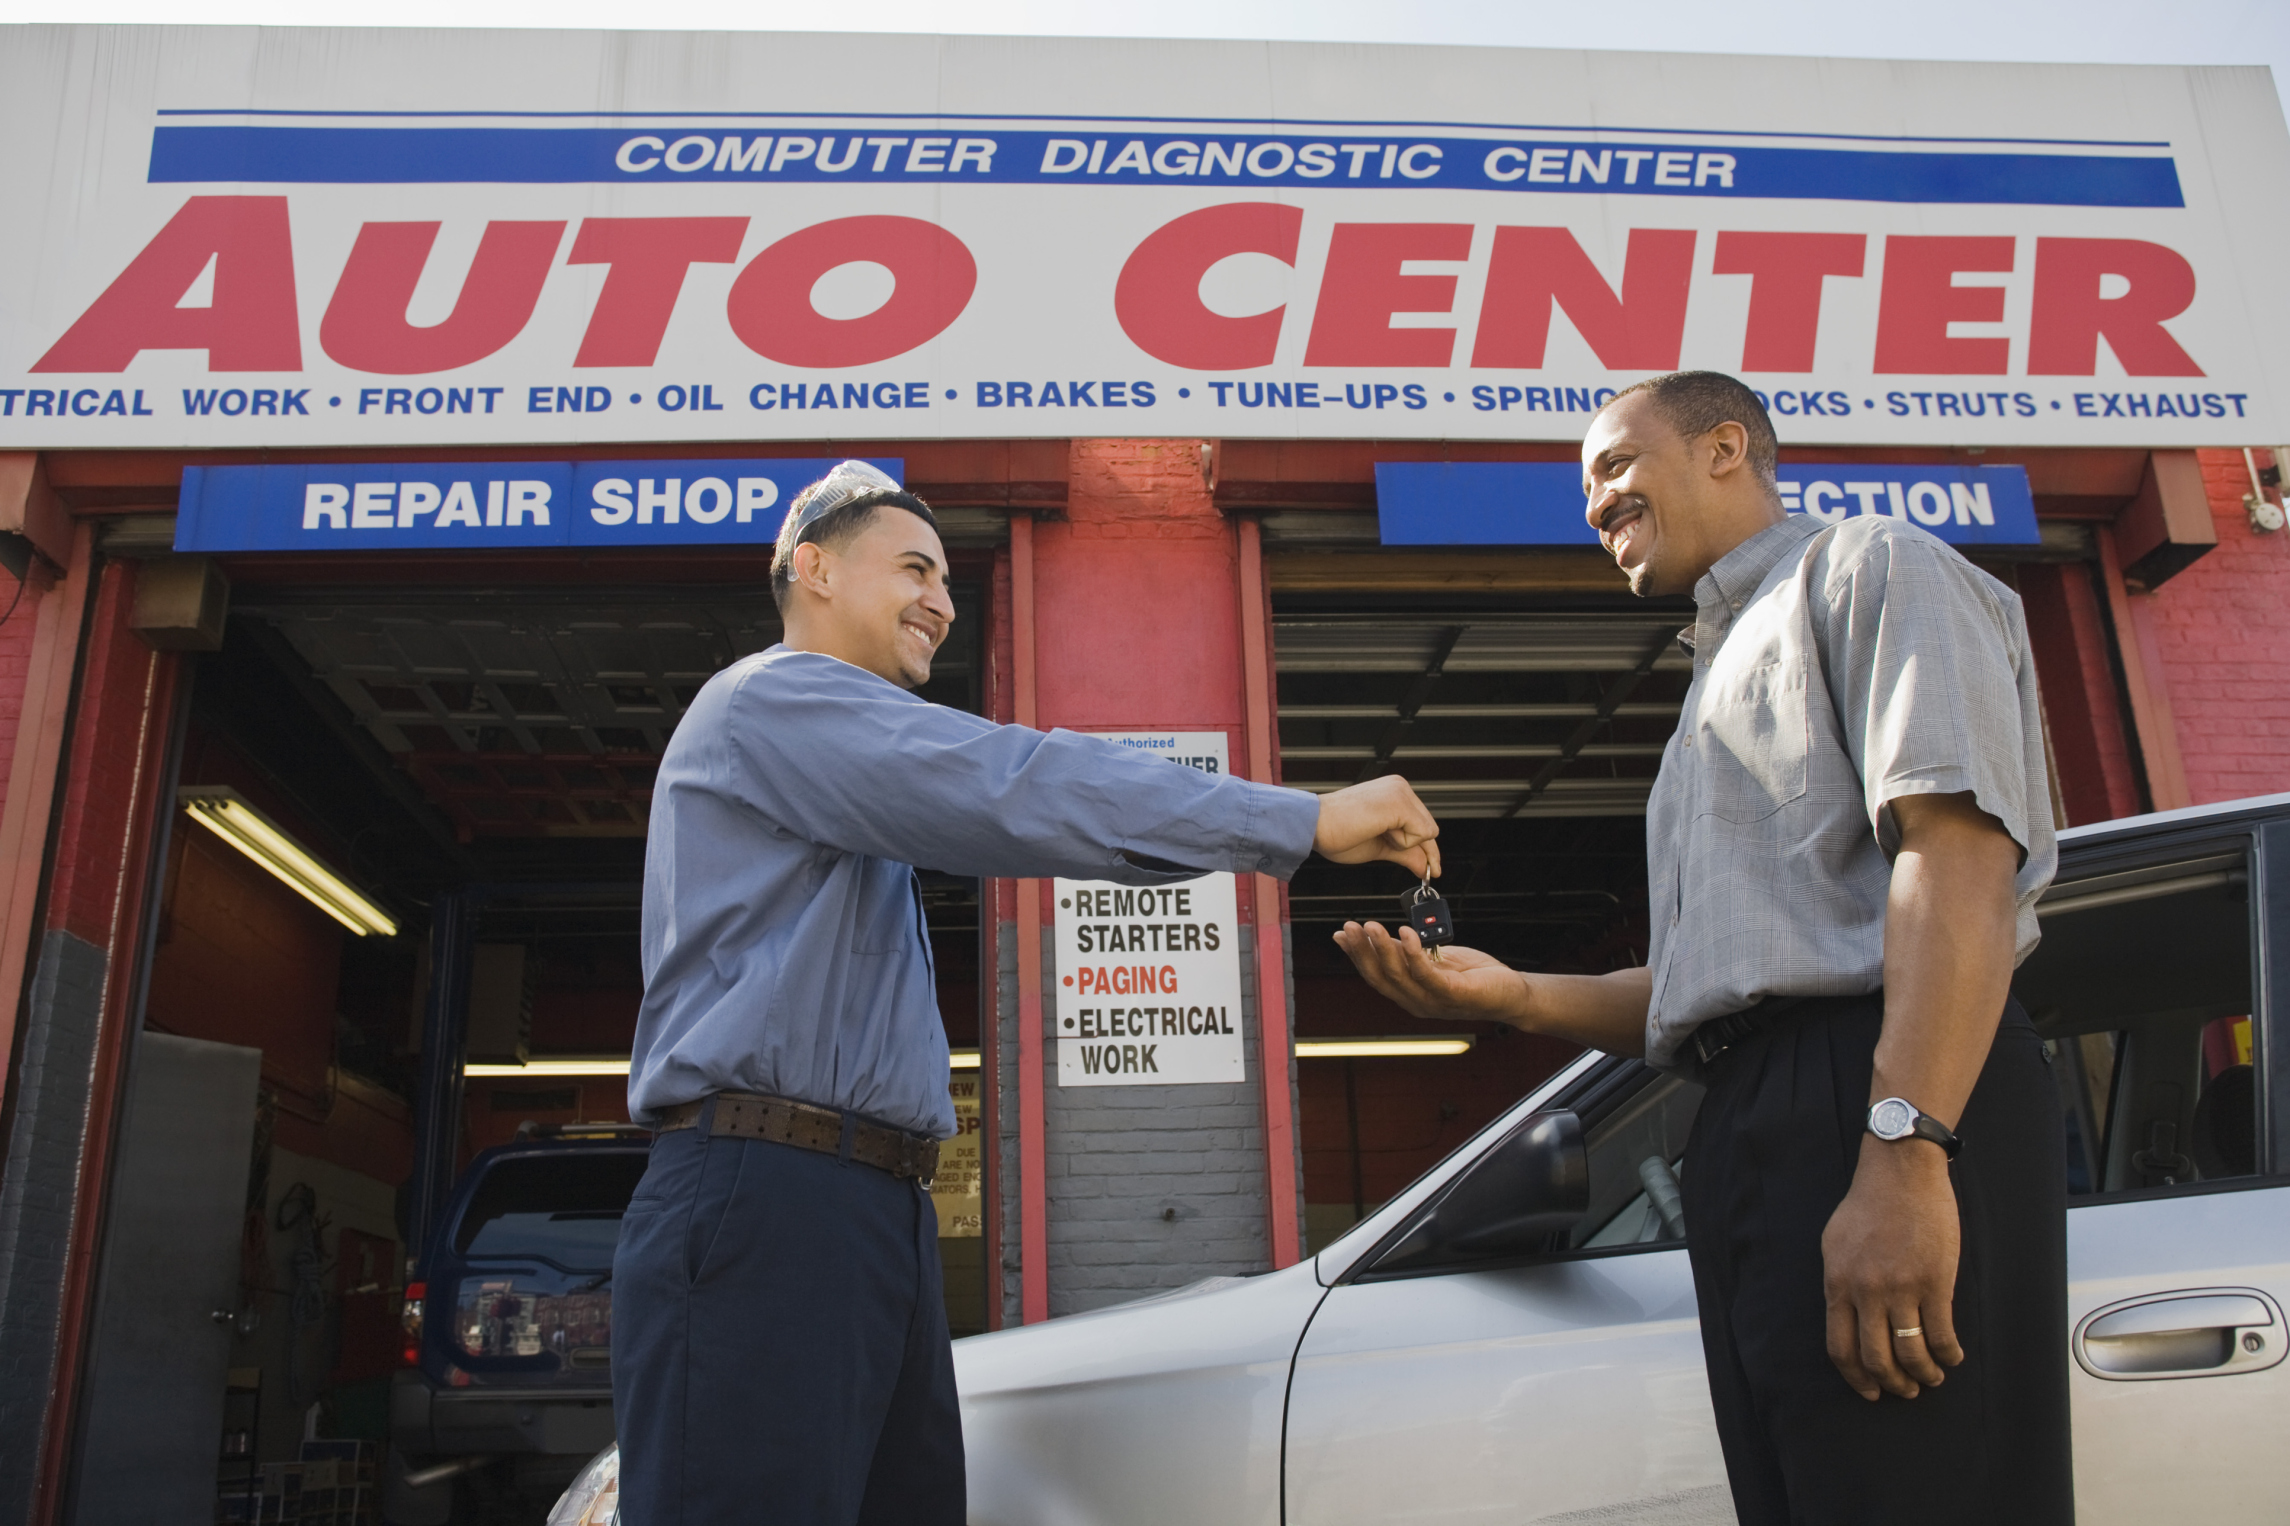 Repair Shop The Best Ways To Attract Business To An Auto Repair Shop Chron